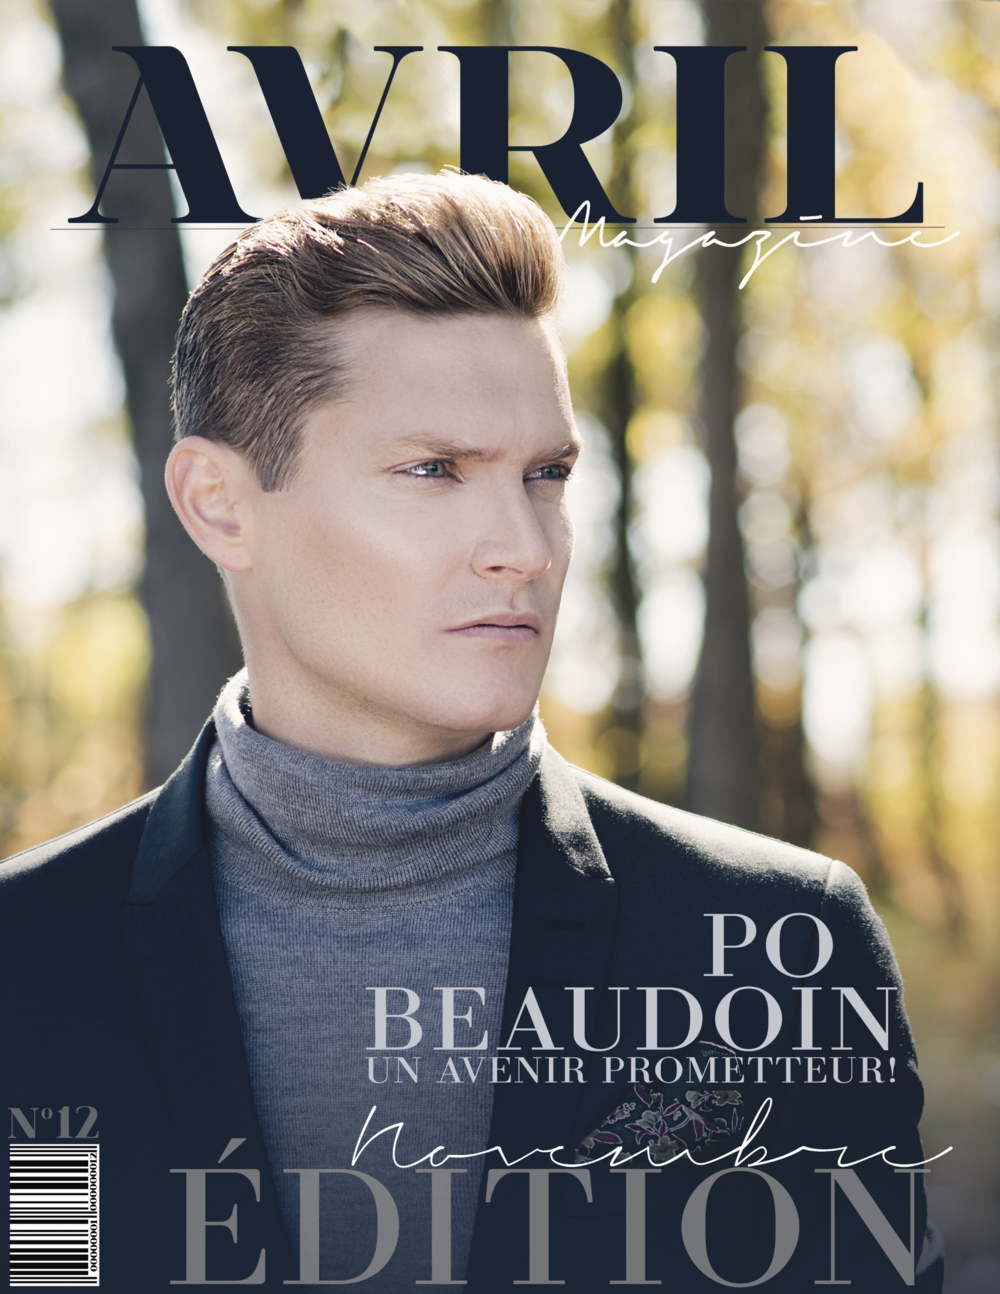 PO_Beaudoin_Avril_Magazine.png